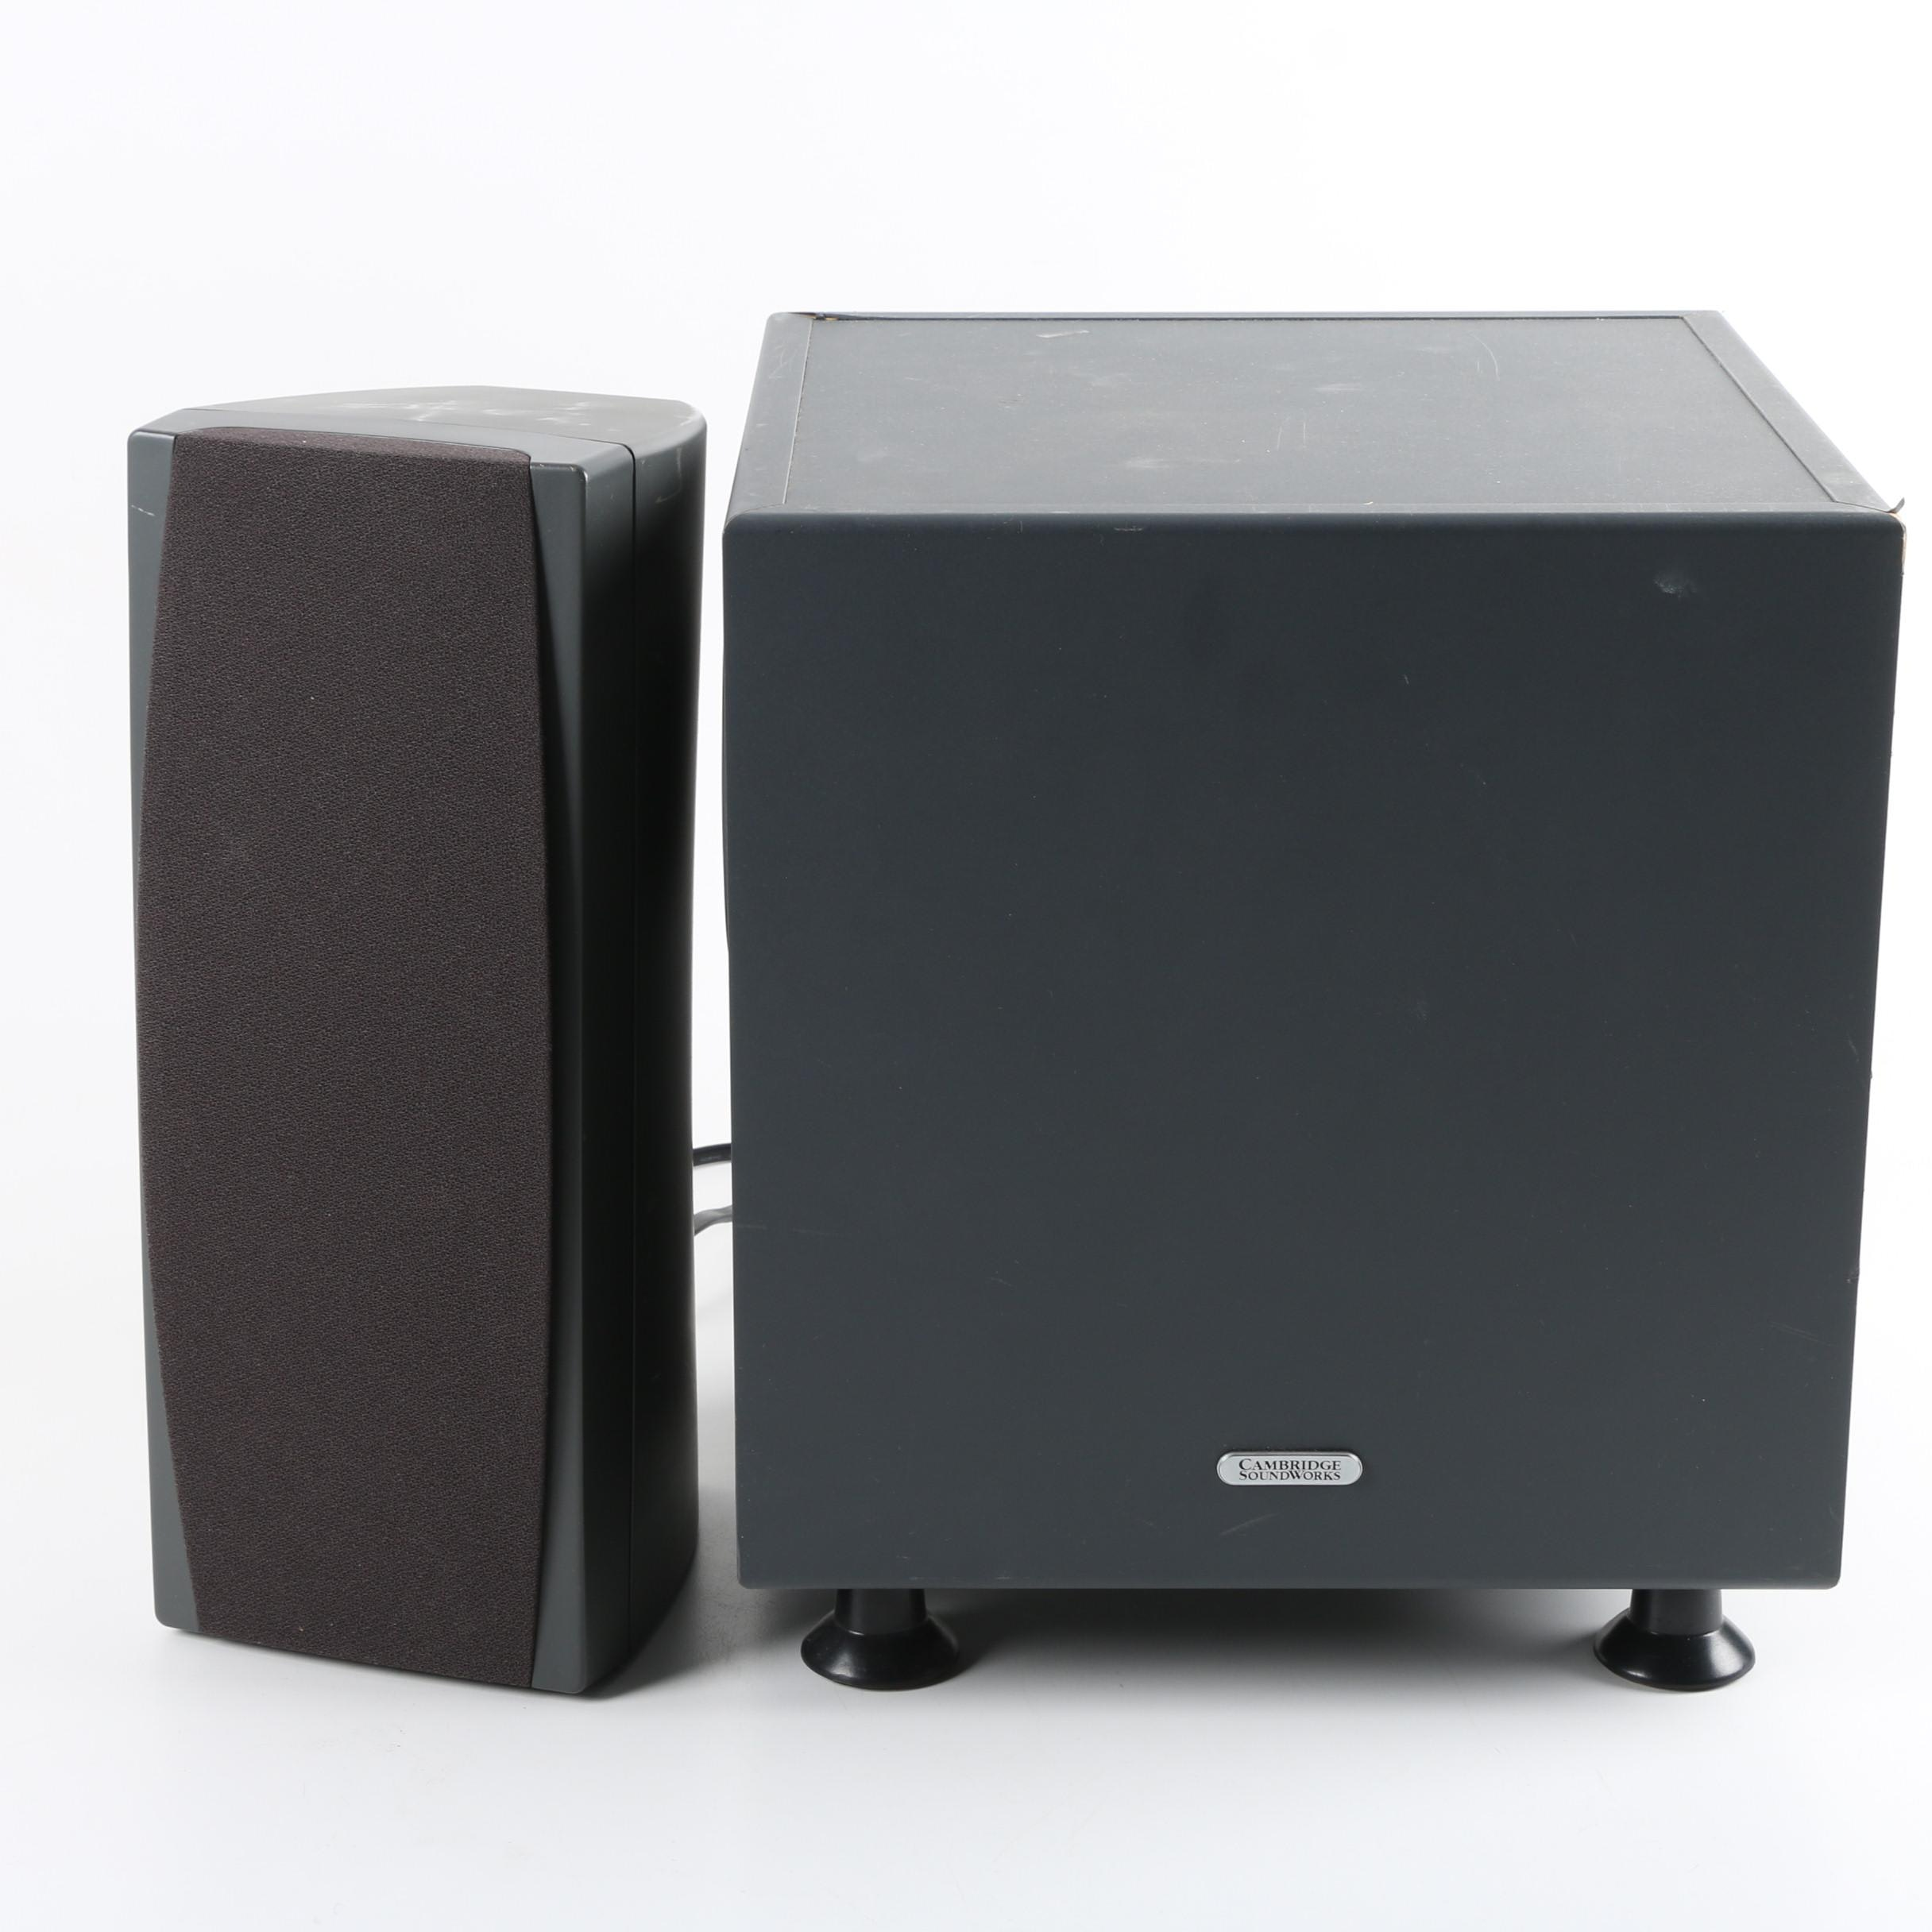 Cambridge Soundworks BassCube 8S Subwoofer and MC300 LCR Loudspeaker